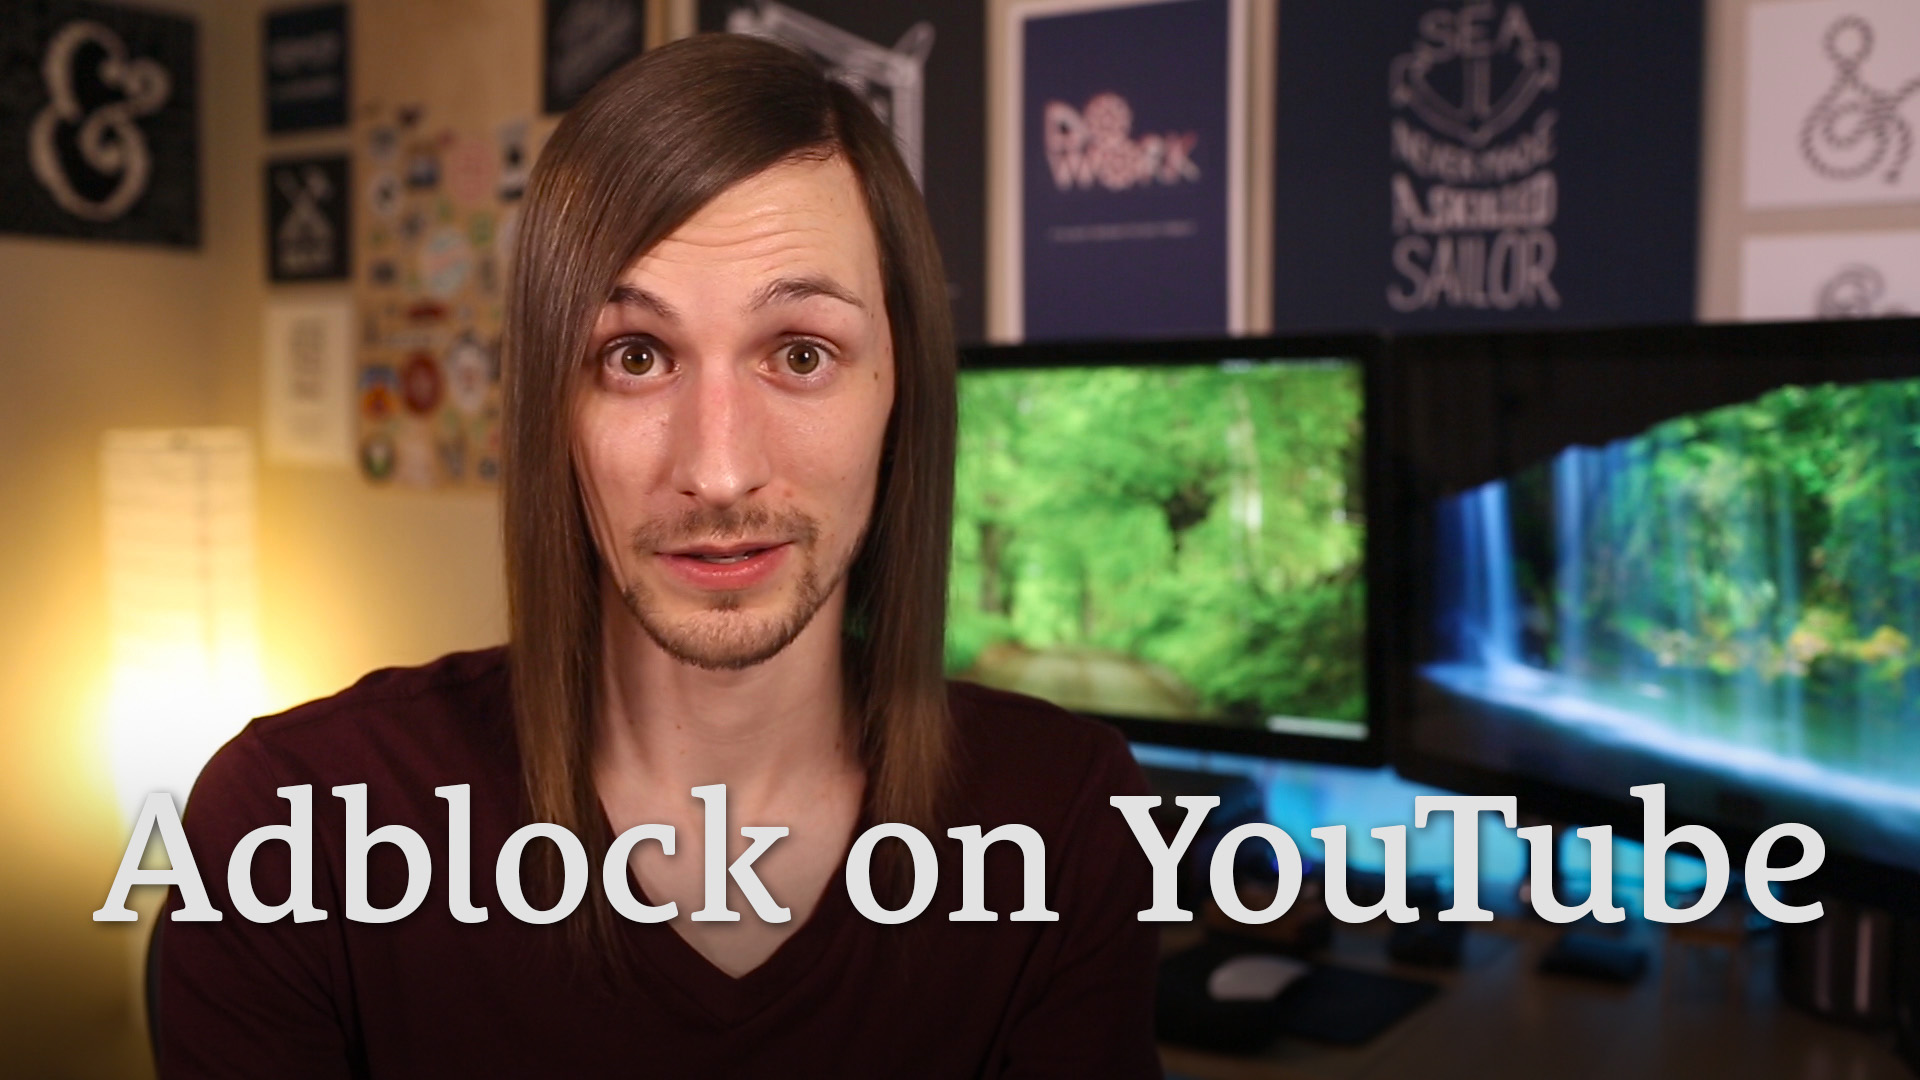 Is It Wrong to Use Adblock on YouTube?